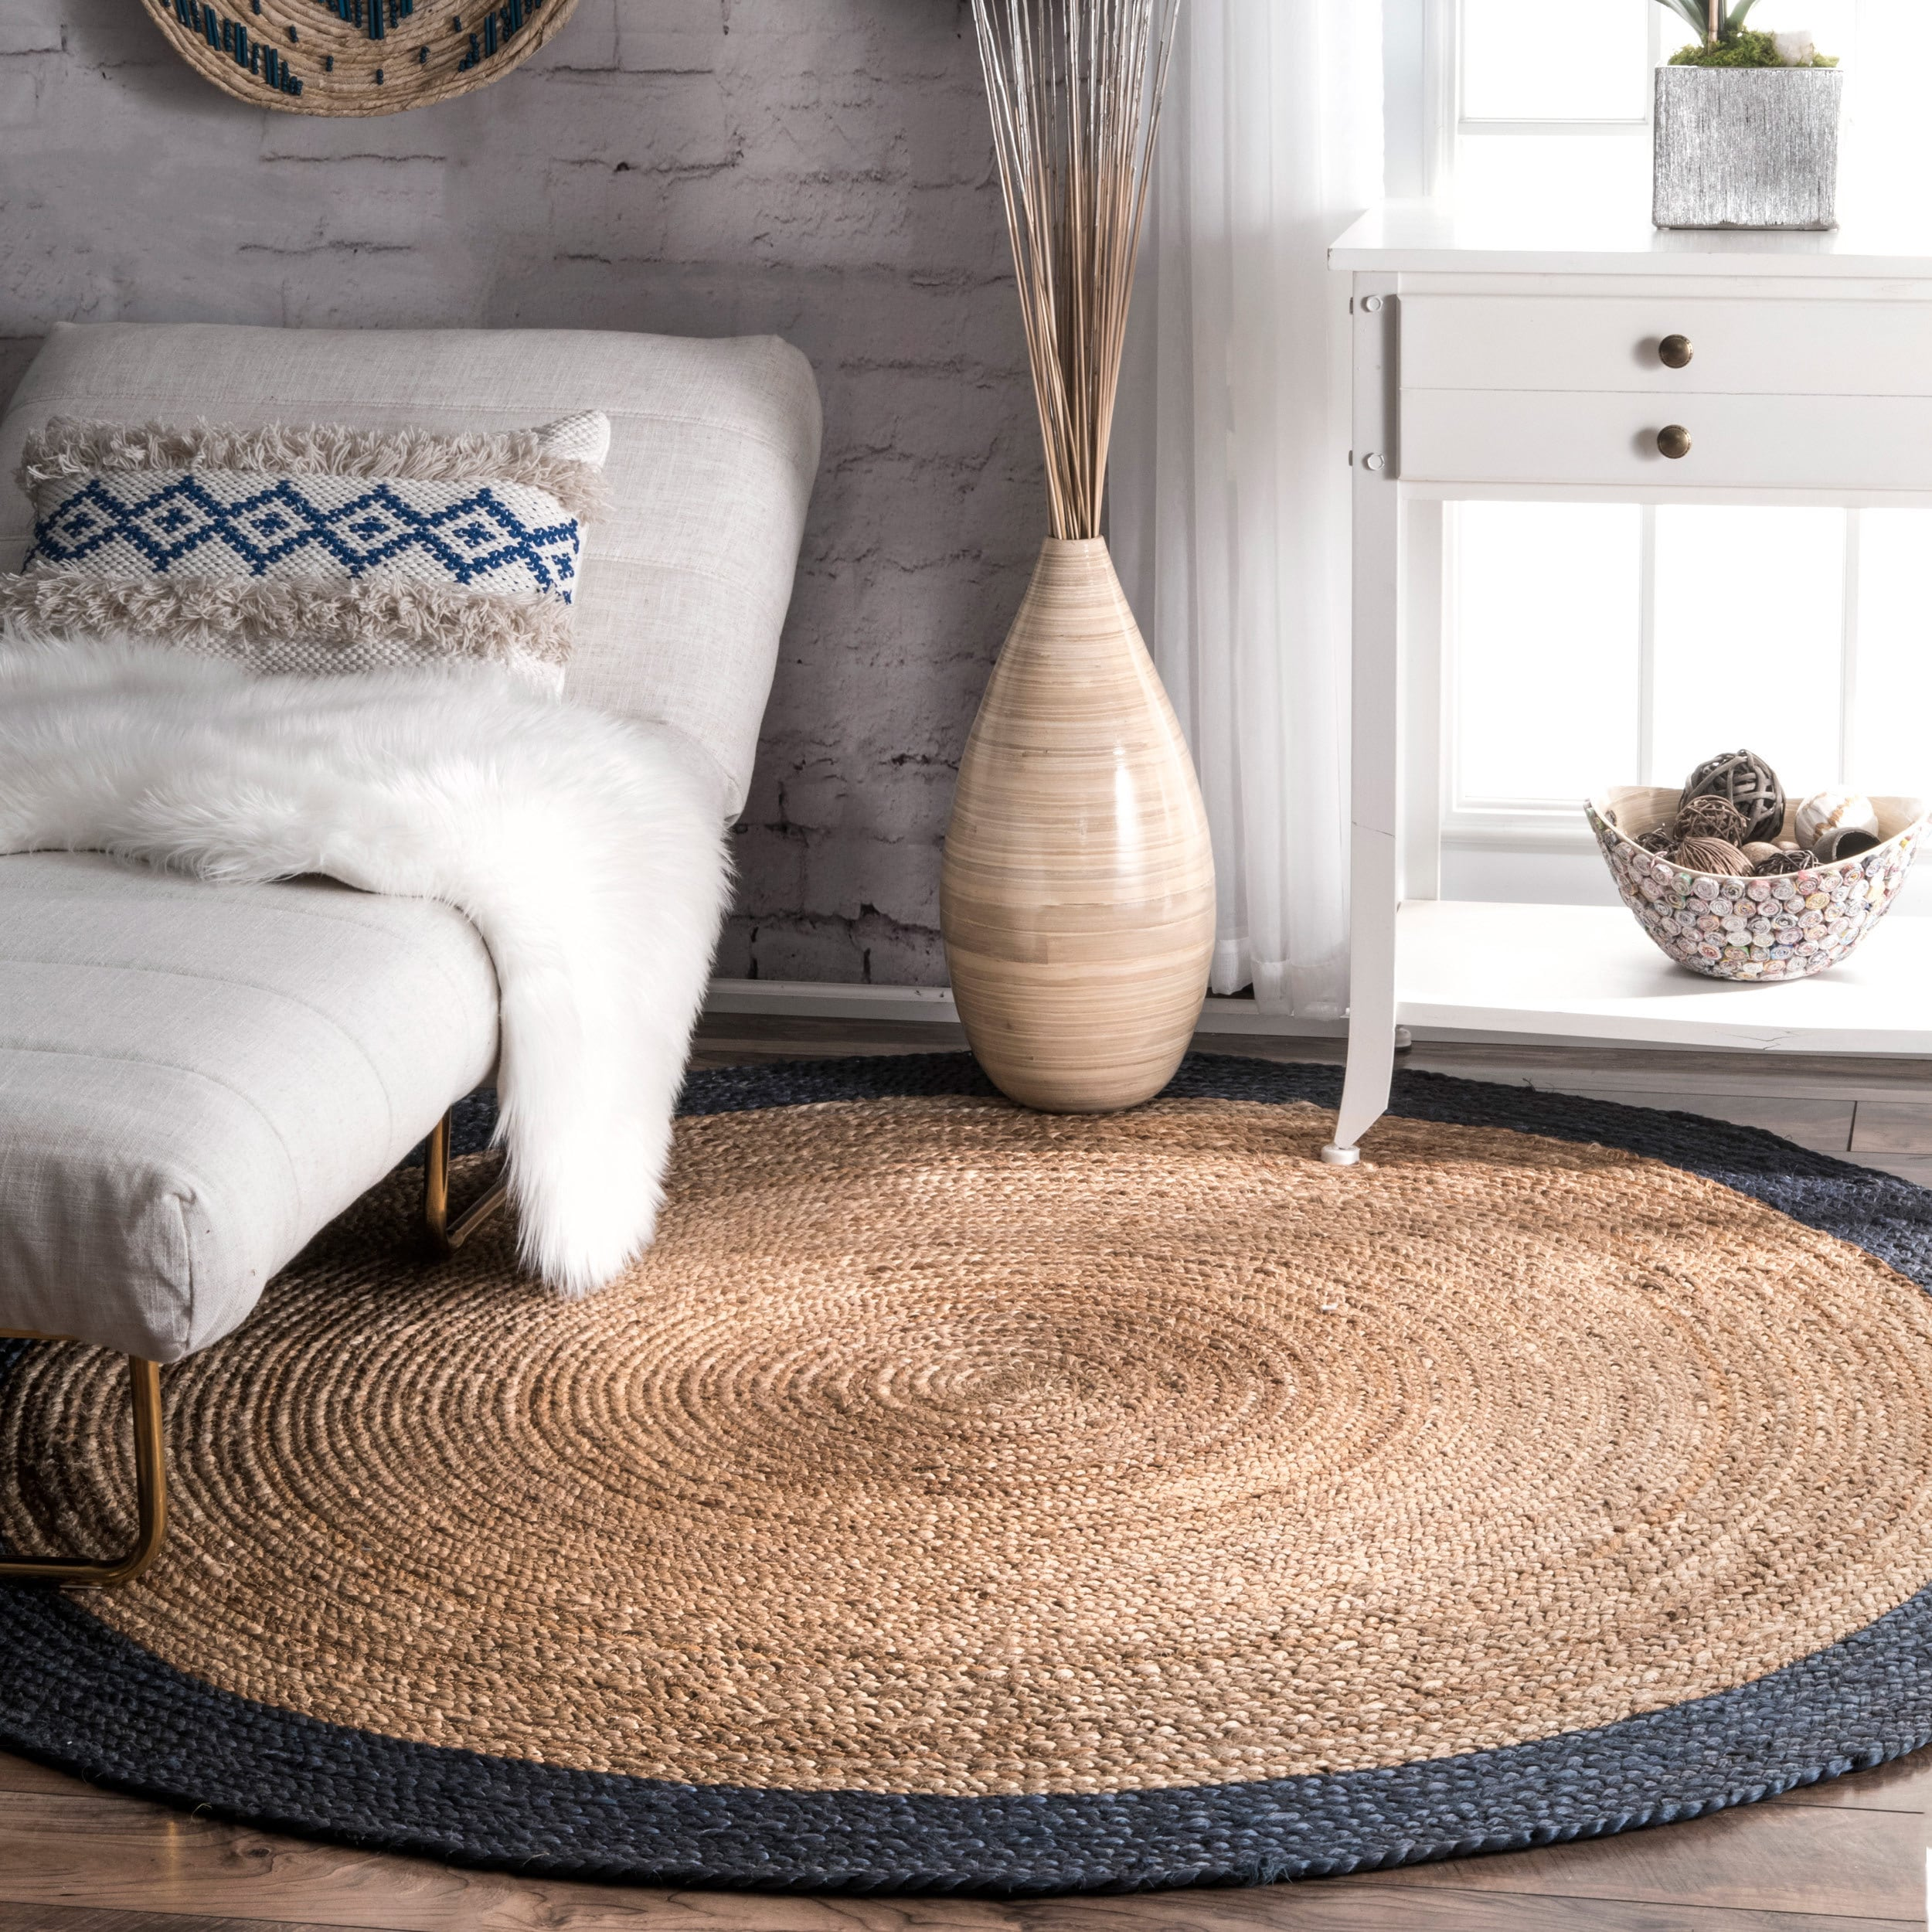 The Gray Barn Cinch Buckle Braided Reversible Border Jute Rug 6 X27 Round